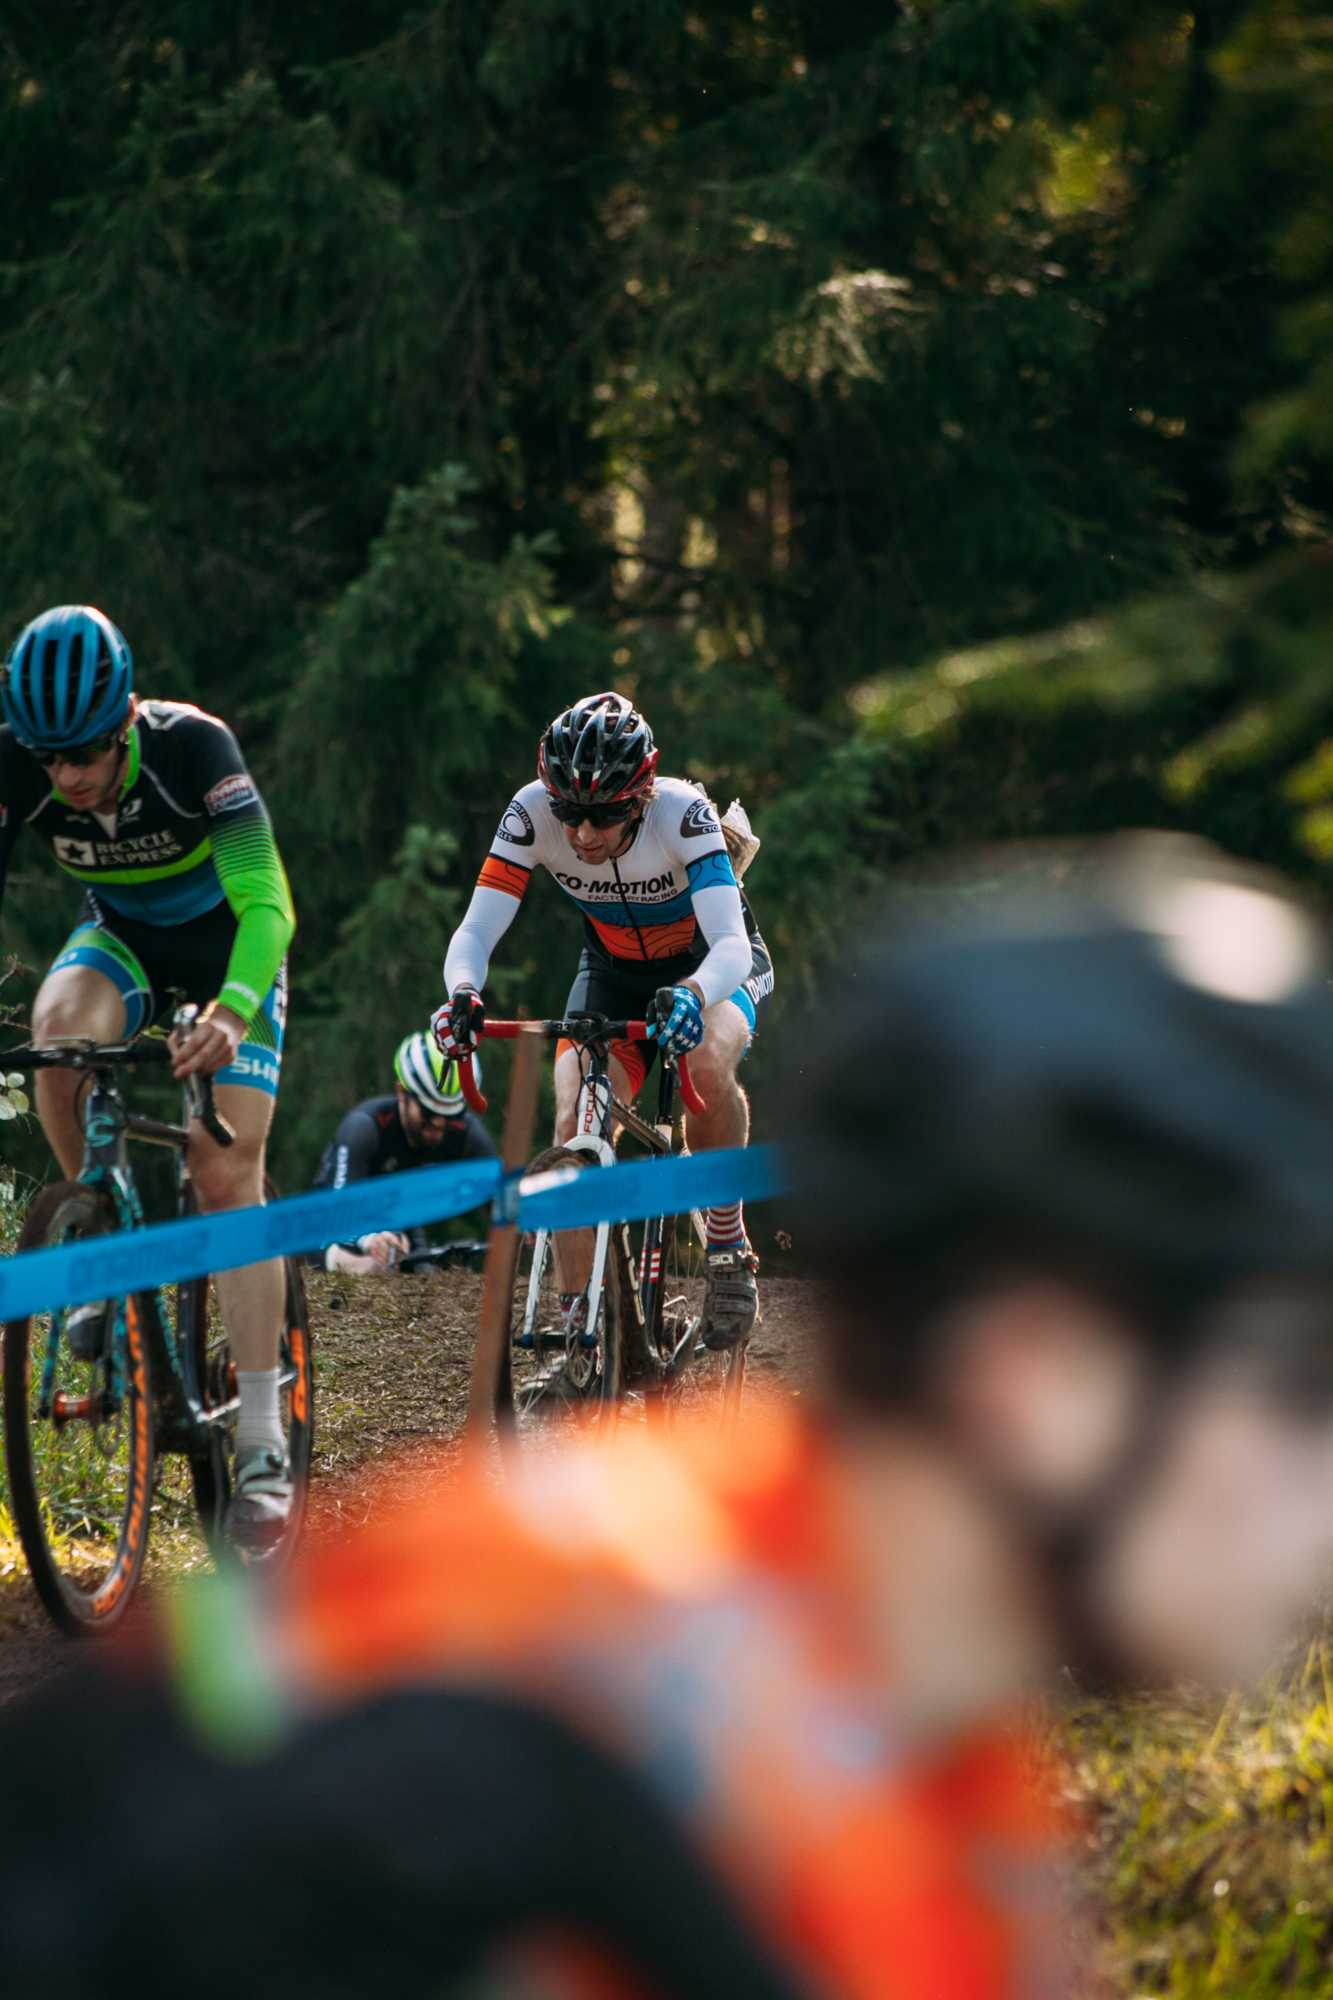 Cyclocross18_CCCX_RainierHS-128-mettlecycling.jpg